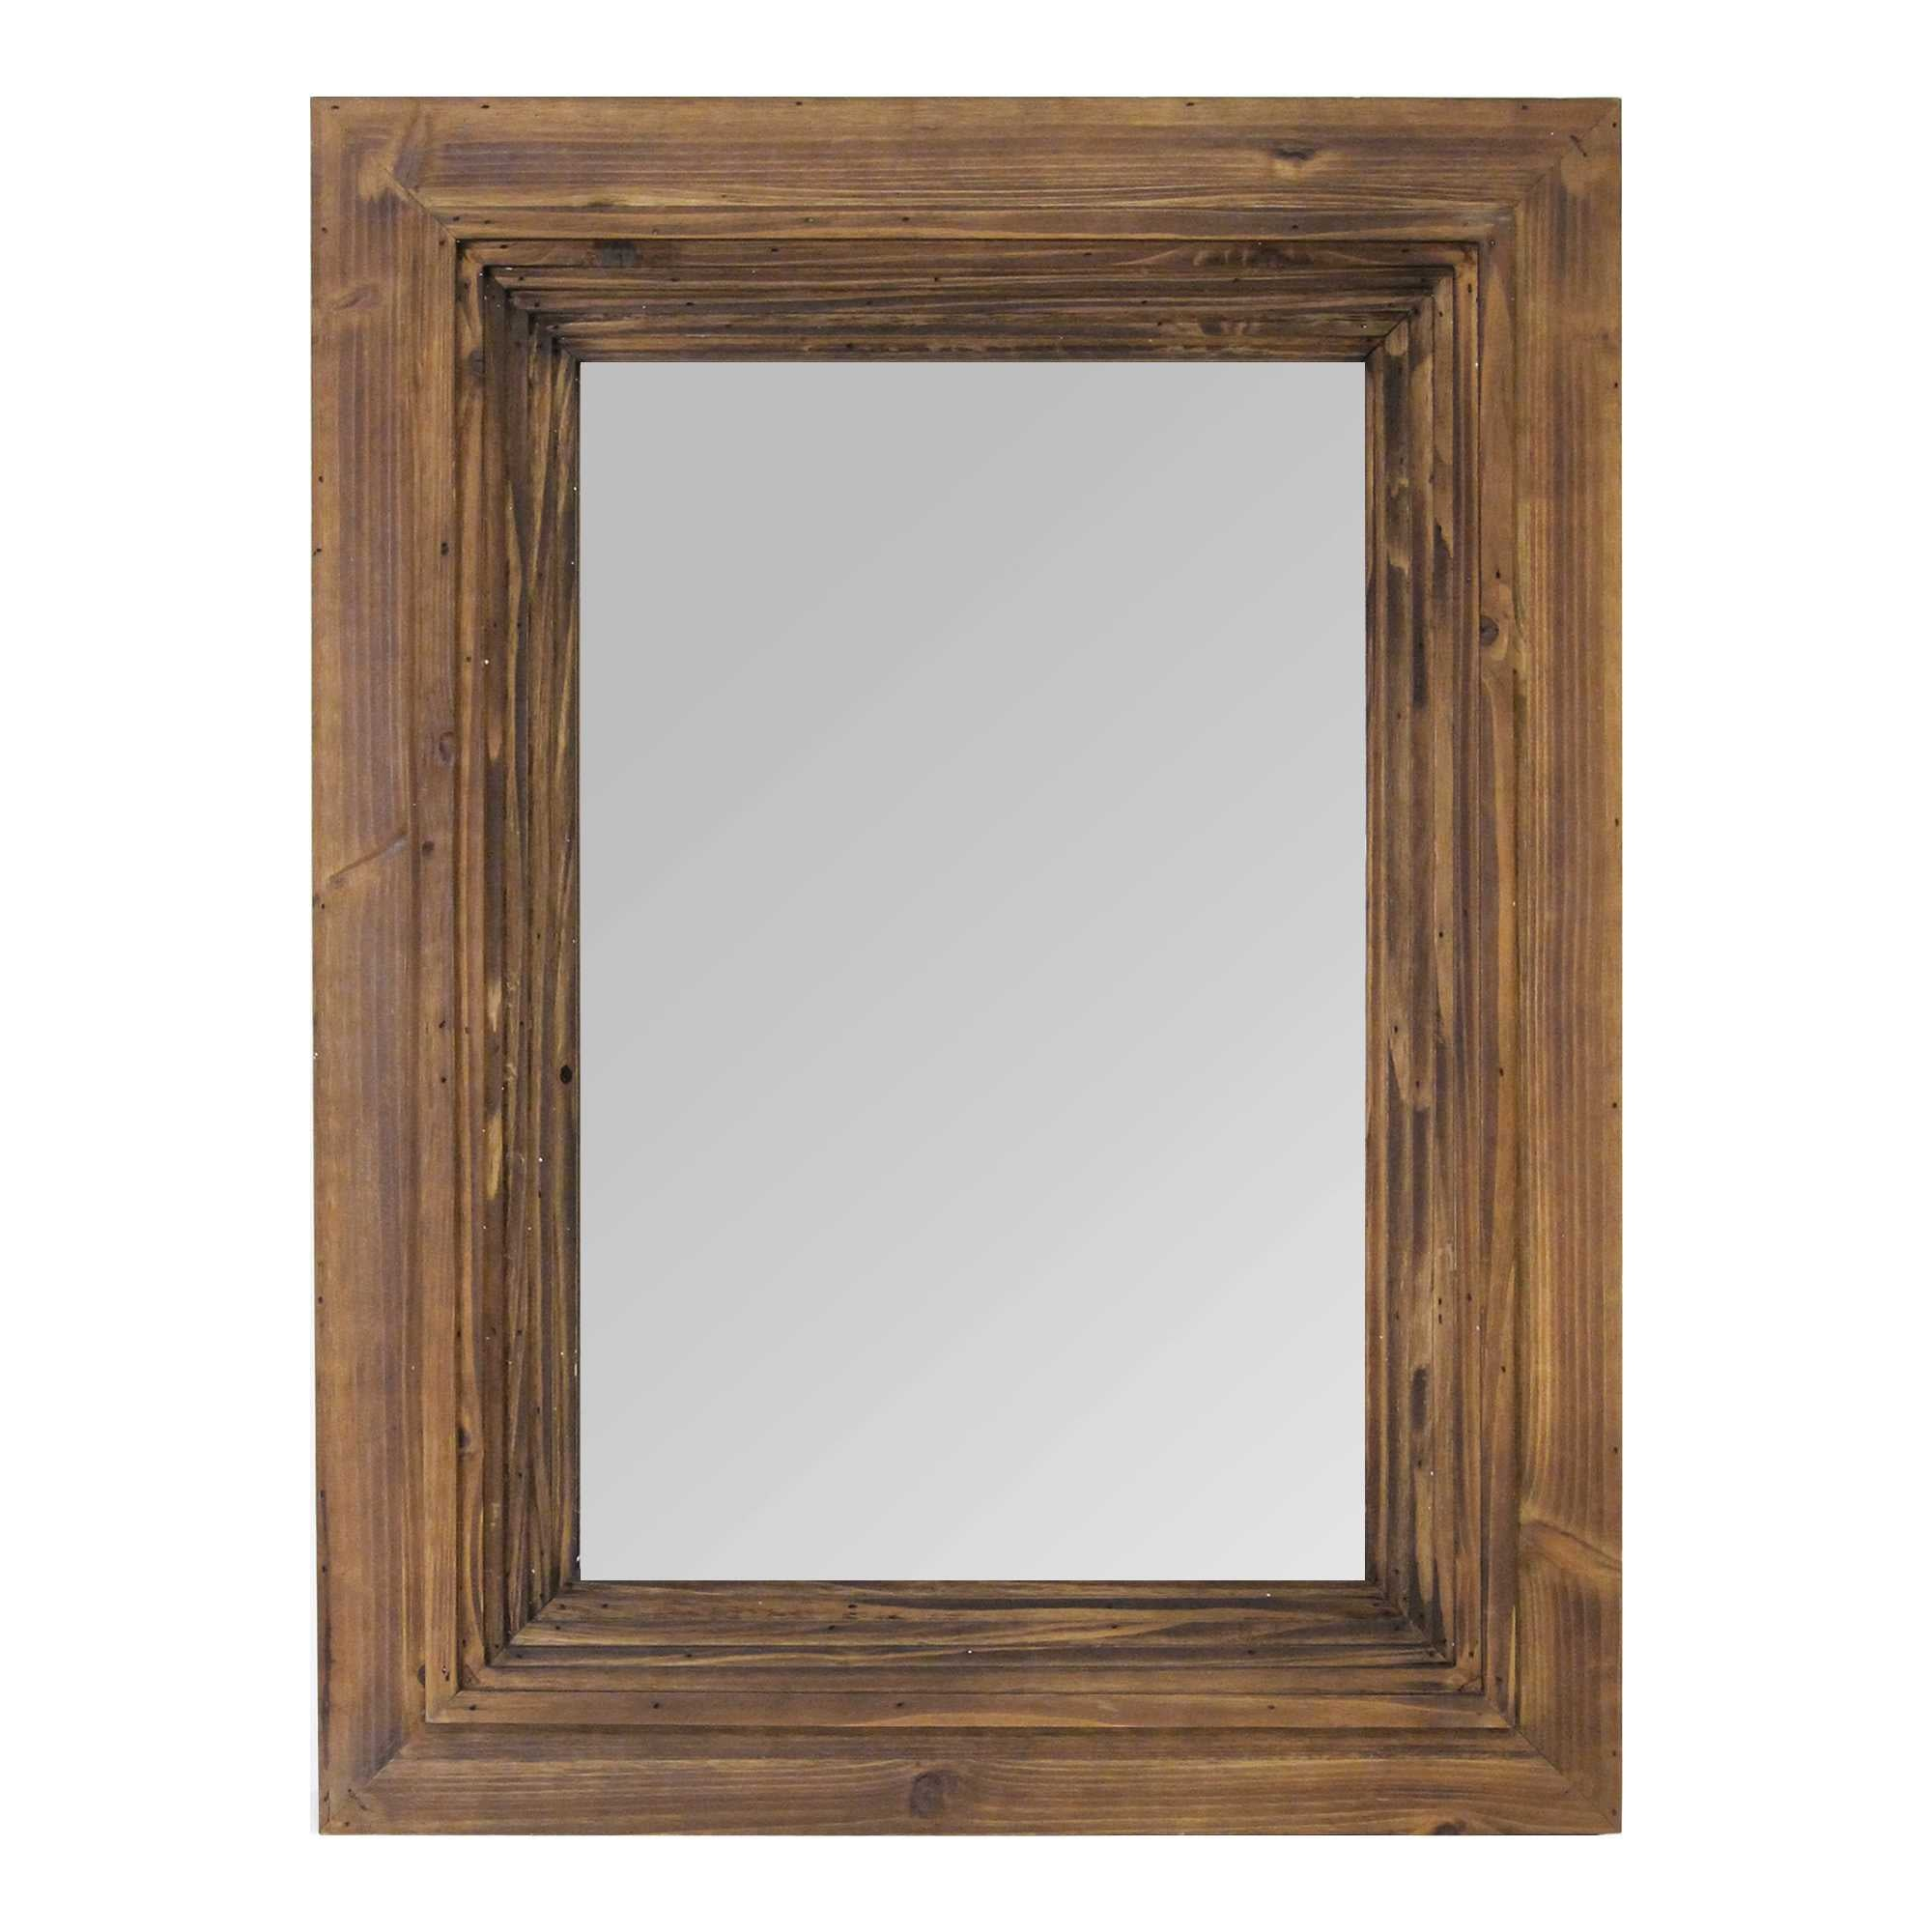 "23.5"" X 2"" X 31.5"" Cherry Wood Glass Mdf Fir Wood Detail Mirror"